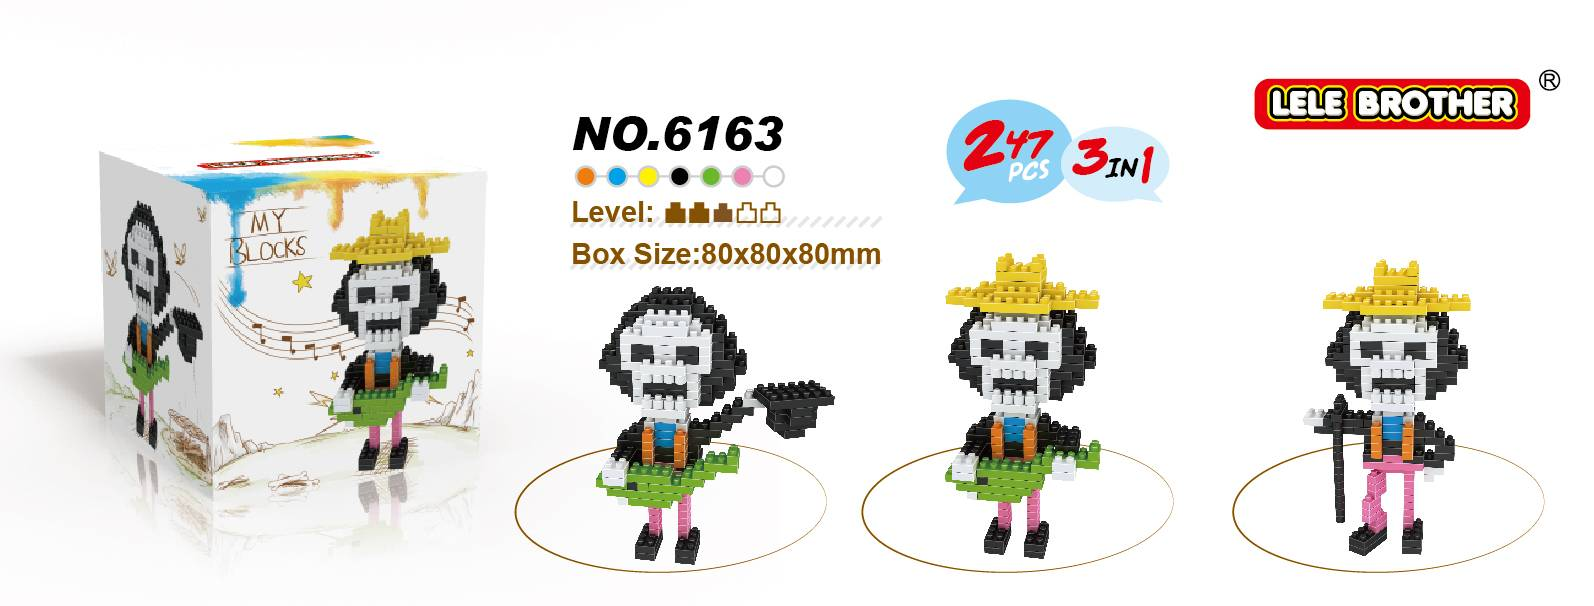 Lele Brother Diamond Block One Piece Series Brook 3 in 1 New Item 2015